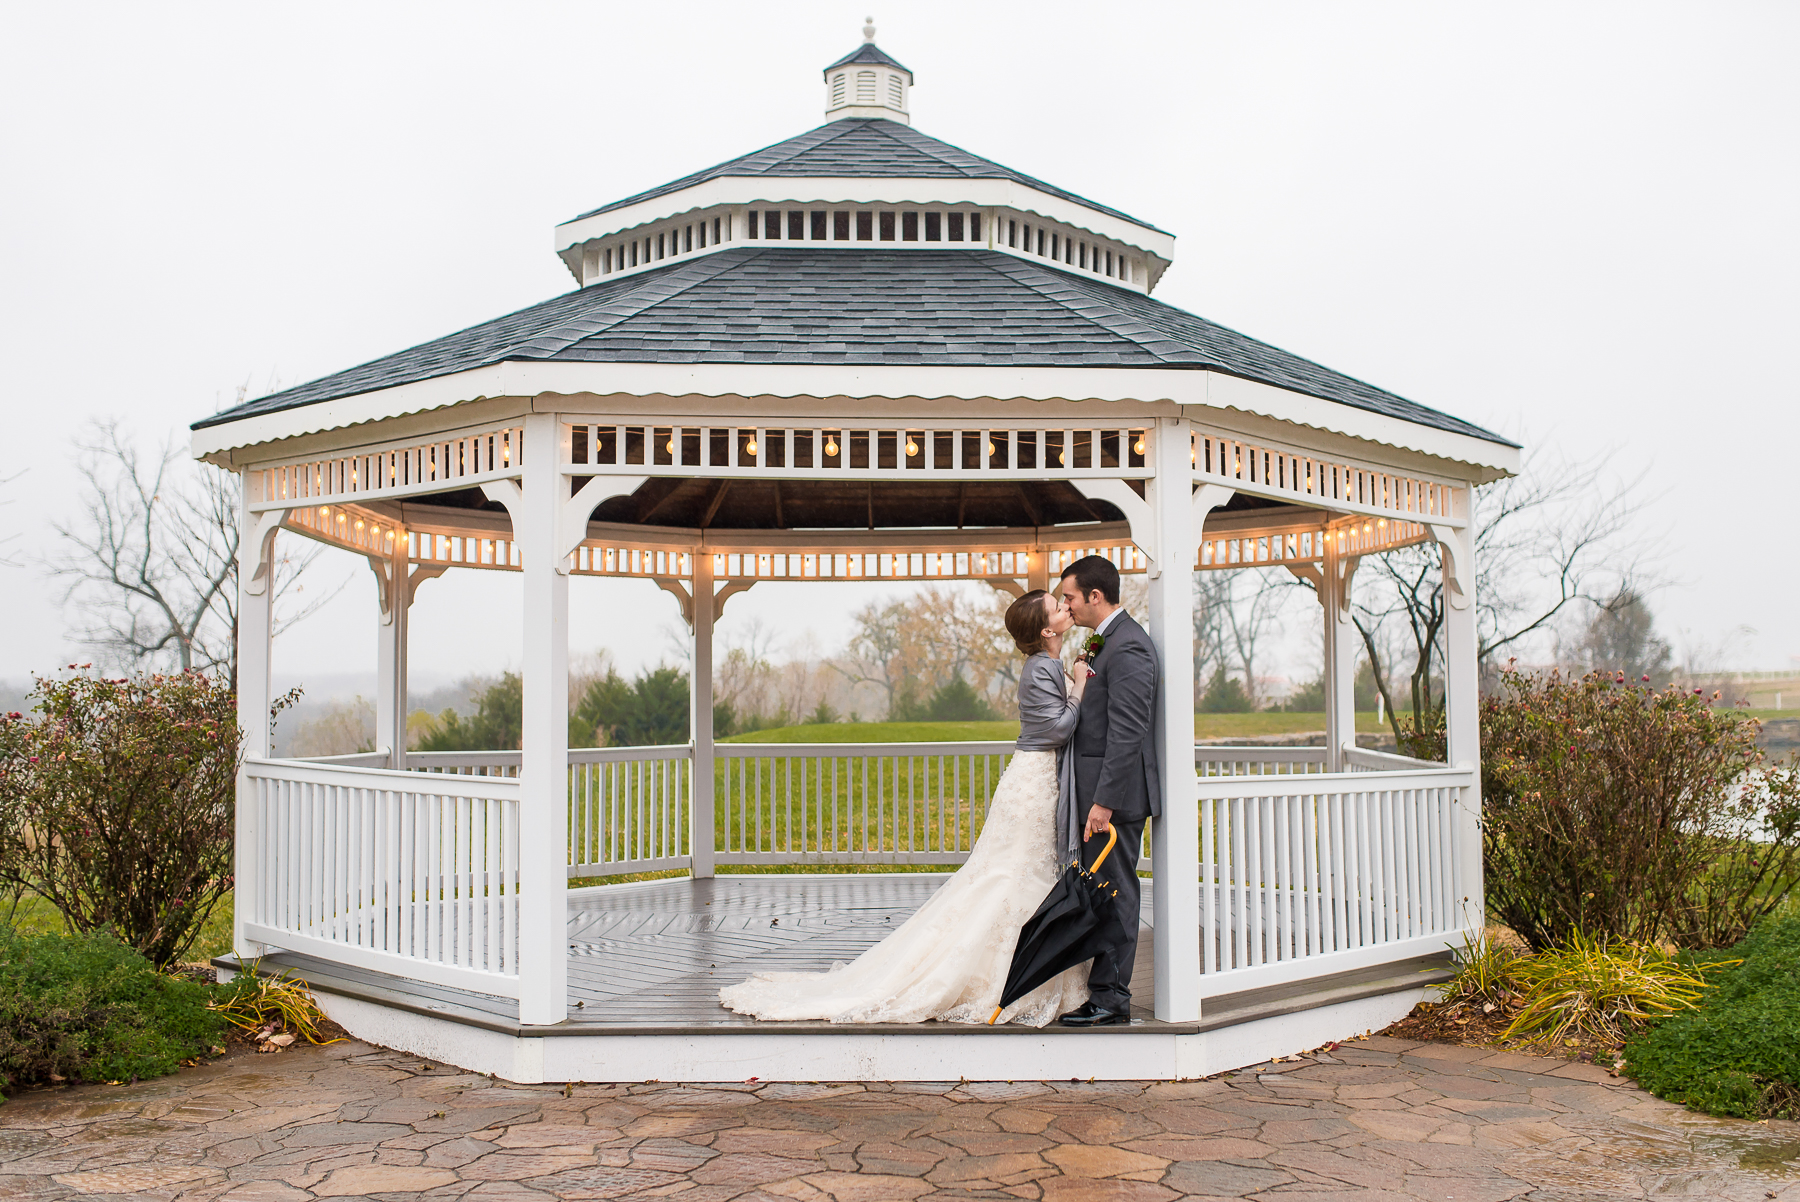 WEDDINGS - Your Happily Ever After Starts Here